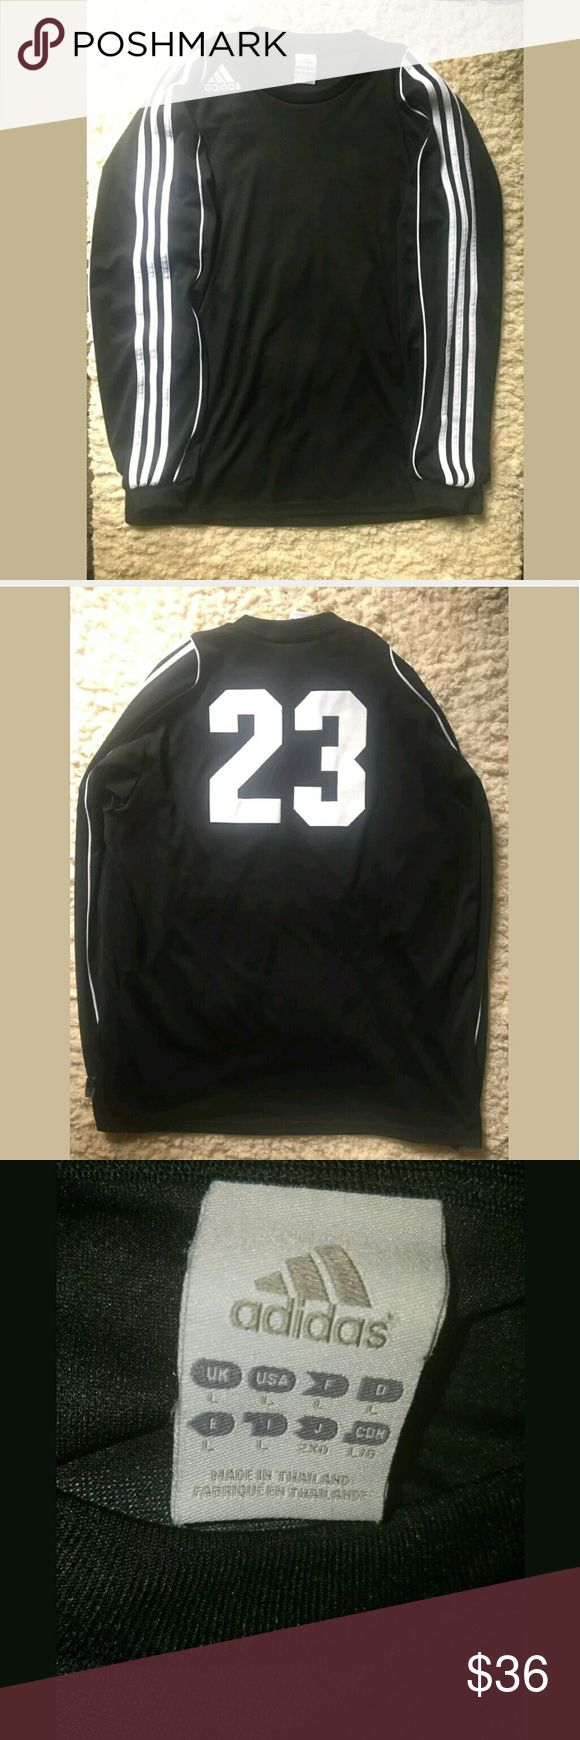 Adidas Shirt Men's Large Long Sleeve Fitness 3 Str Adidas Shirt Men's Large Long Sleeve Fitness 3 Stripes Black White #23   Excellent used condition.   23 inches pit to pit.  31 inches long.   AB adidas Shirts Tees - Long Sleeve